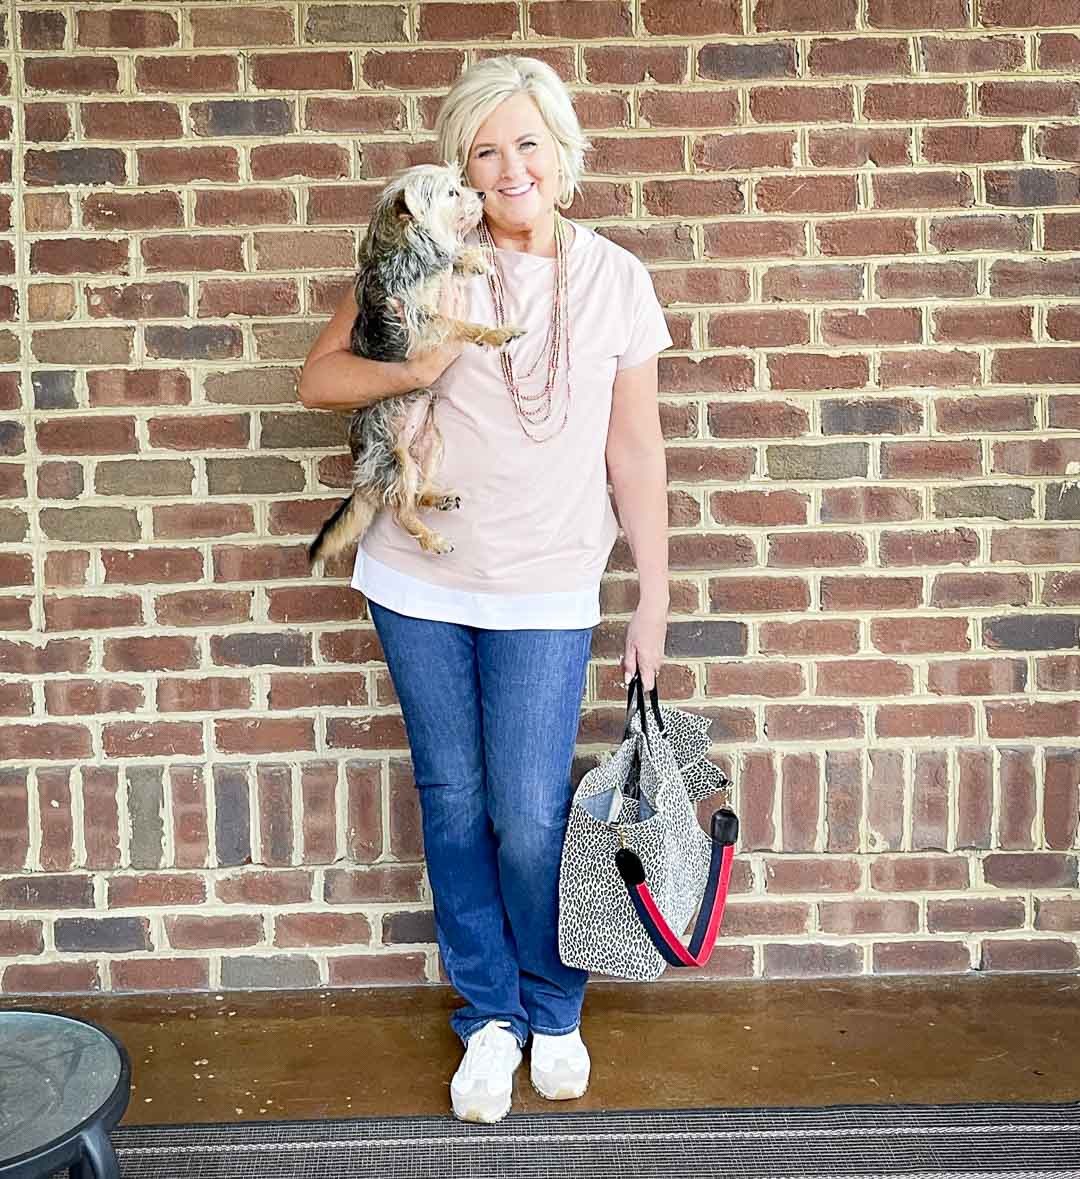 Over 40 Fashion Blogger, Tania Stephens, is holding her dog while dressed in blush pink, a white tank tunic, bootcut jeans, and carrying a suede animal print tote